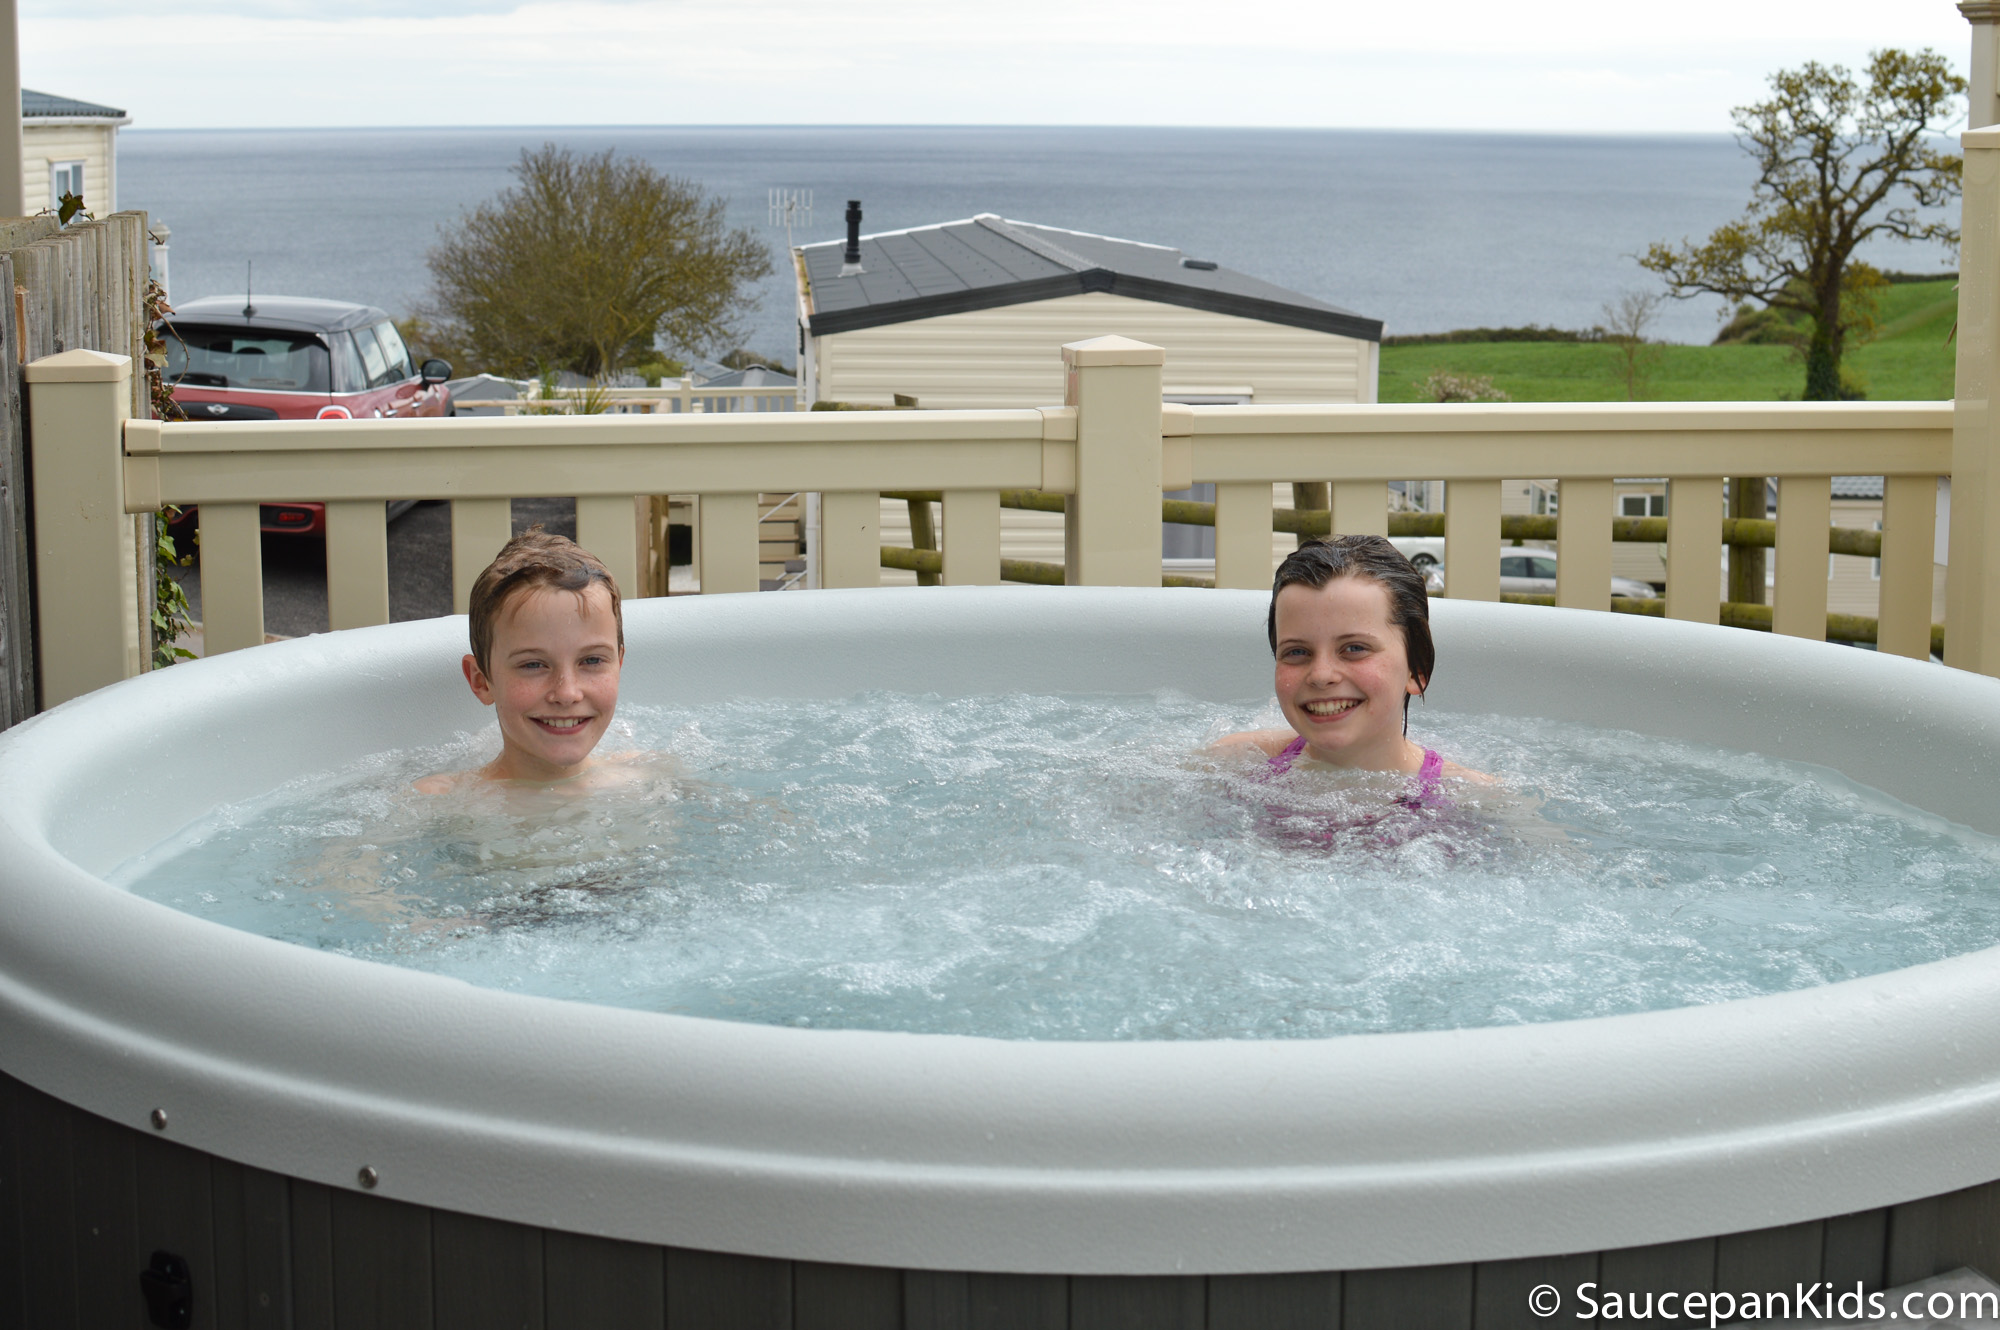 Hot Tub at Ladram Bay Holiday Park review by Saucepan Kids